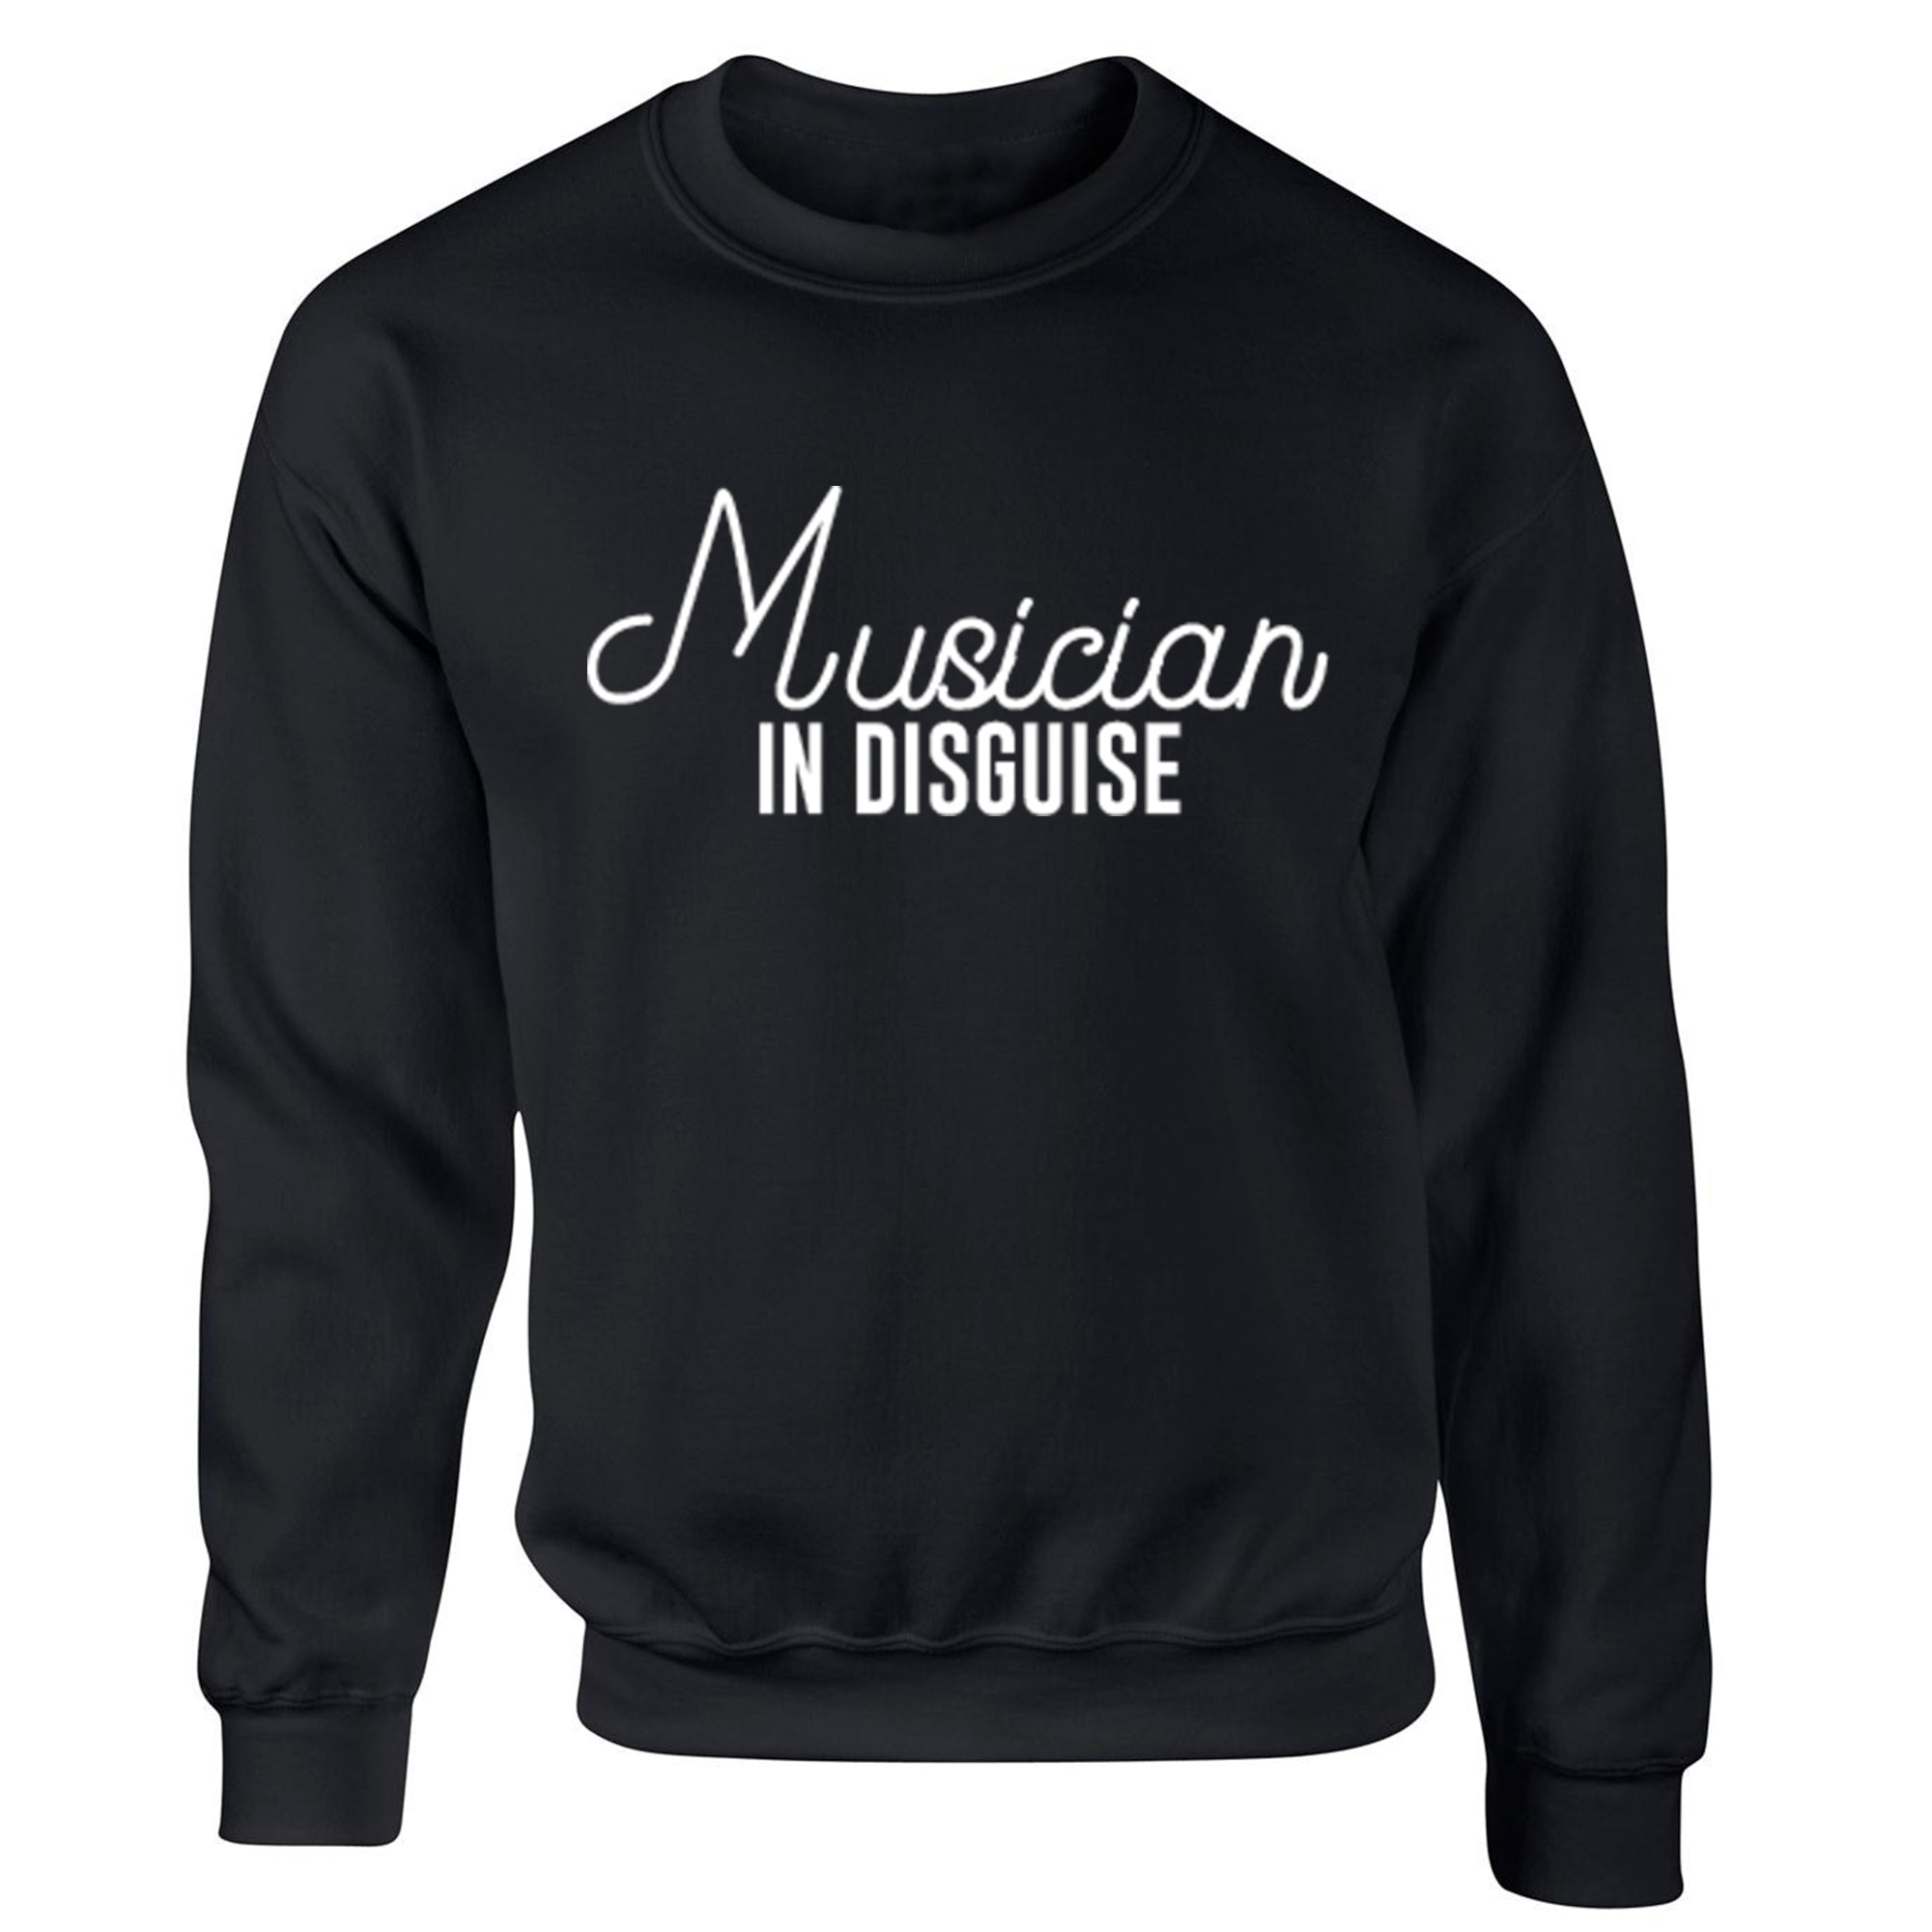 Musician In Disguise Childrens Ages 3/4-12/14 Unisex Jumper S0050 - Illustrated Identity Ltd.